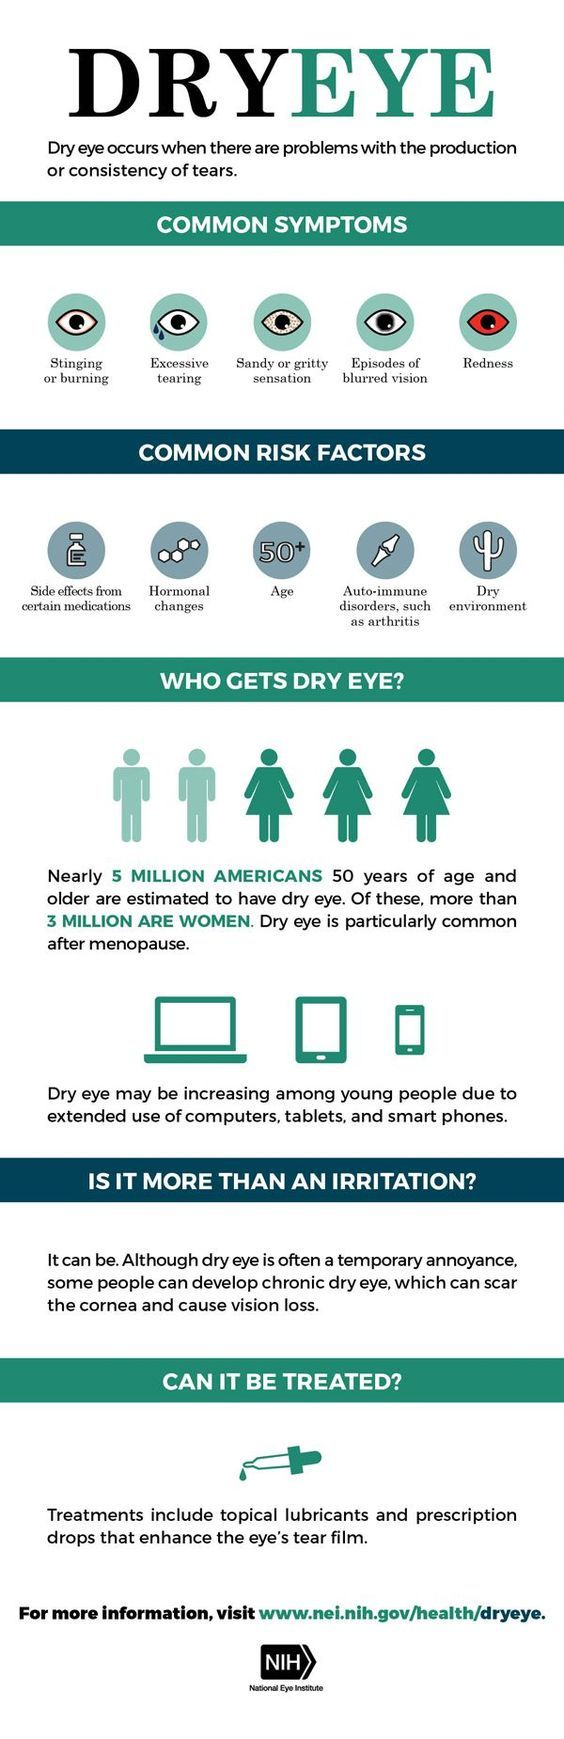 Are you suffering from dry, red, itchy eyes? You are not alone! Nearly 5 million Americans 50 years of age and older are estimated to have dry eye. #Dryeyes #Saveyoursight #Redeyes #CoastalEyeInstitute